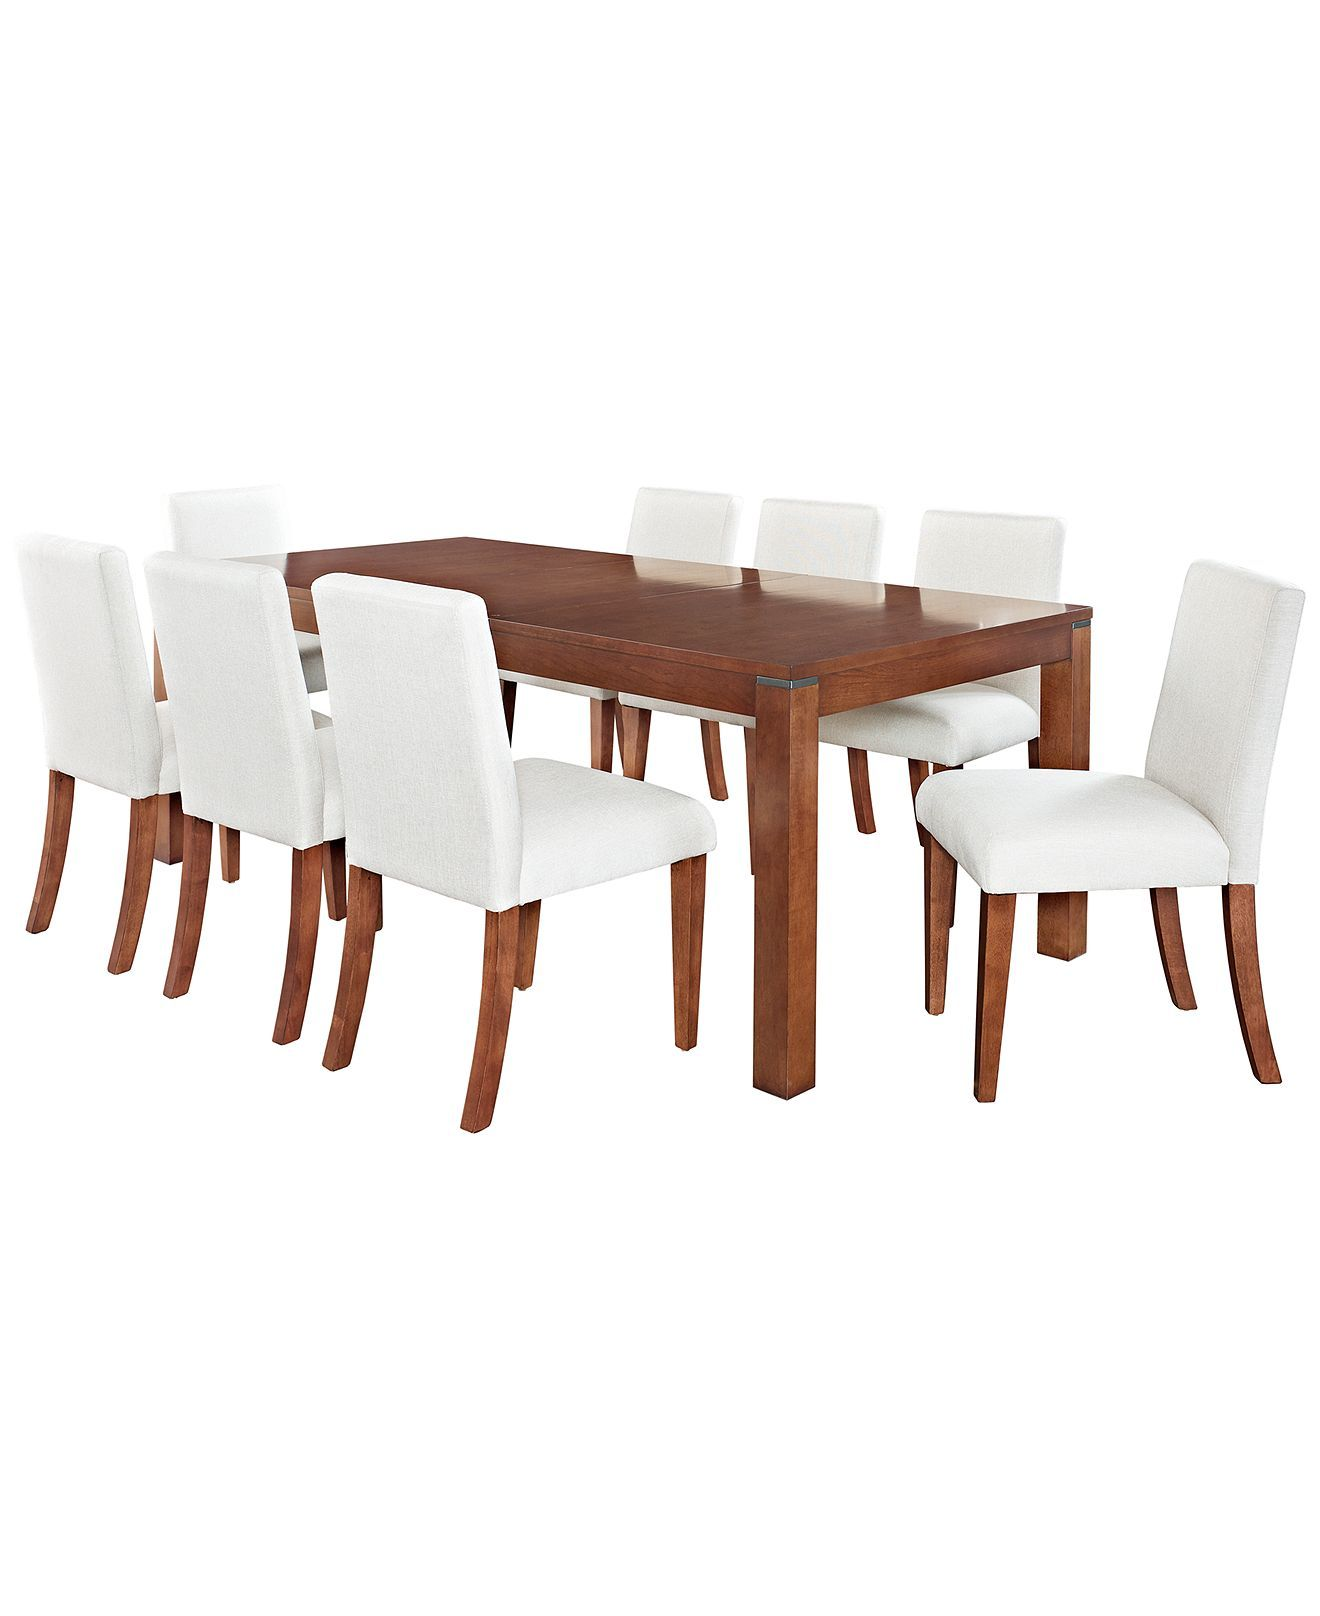 Sonoma Dining Room Furniture 9 Piece Set Table And 8 Side Chairs